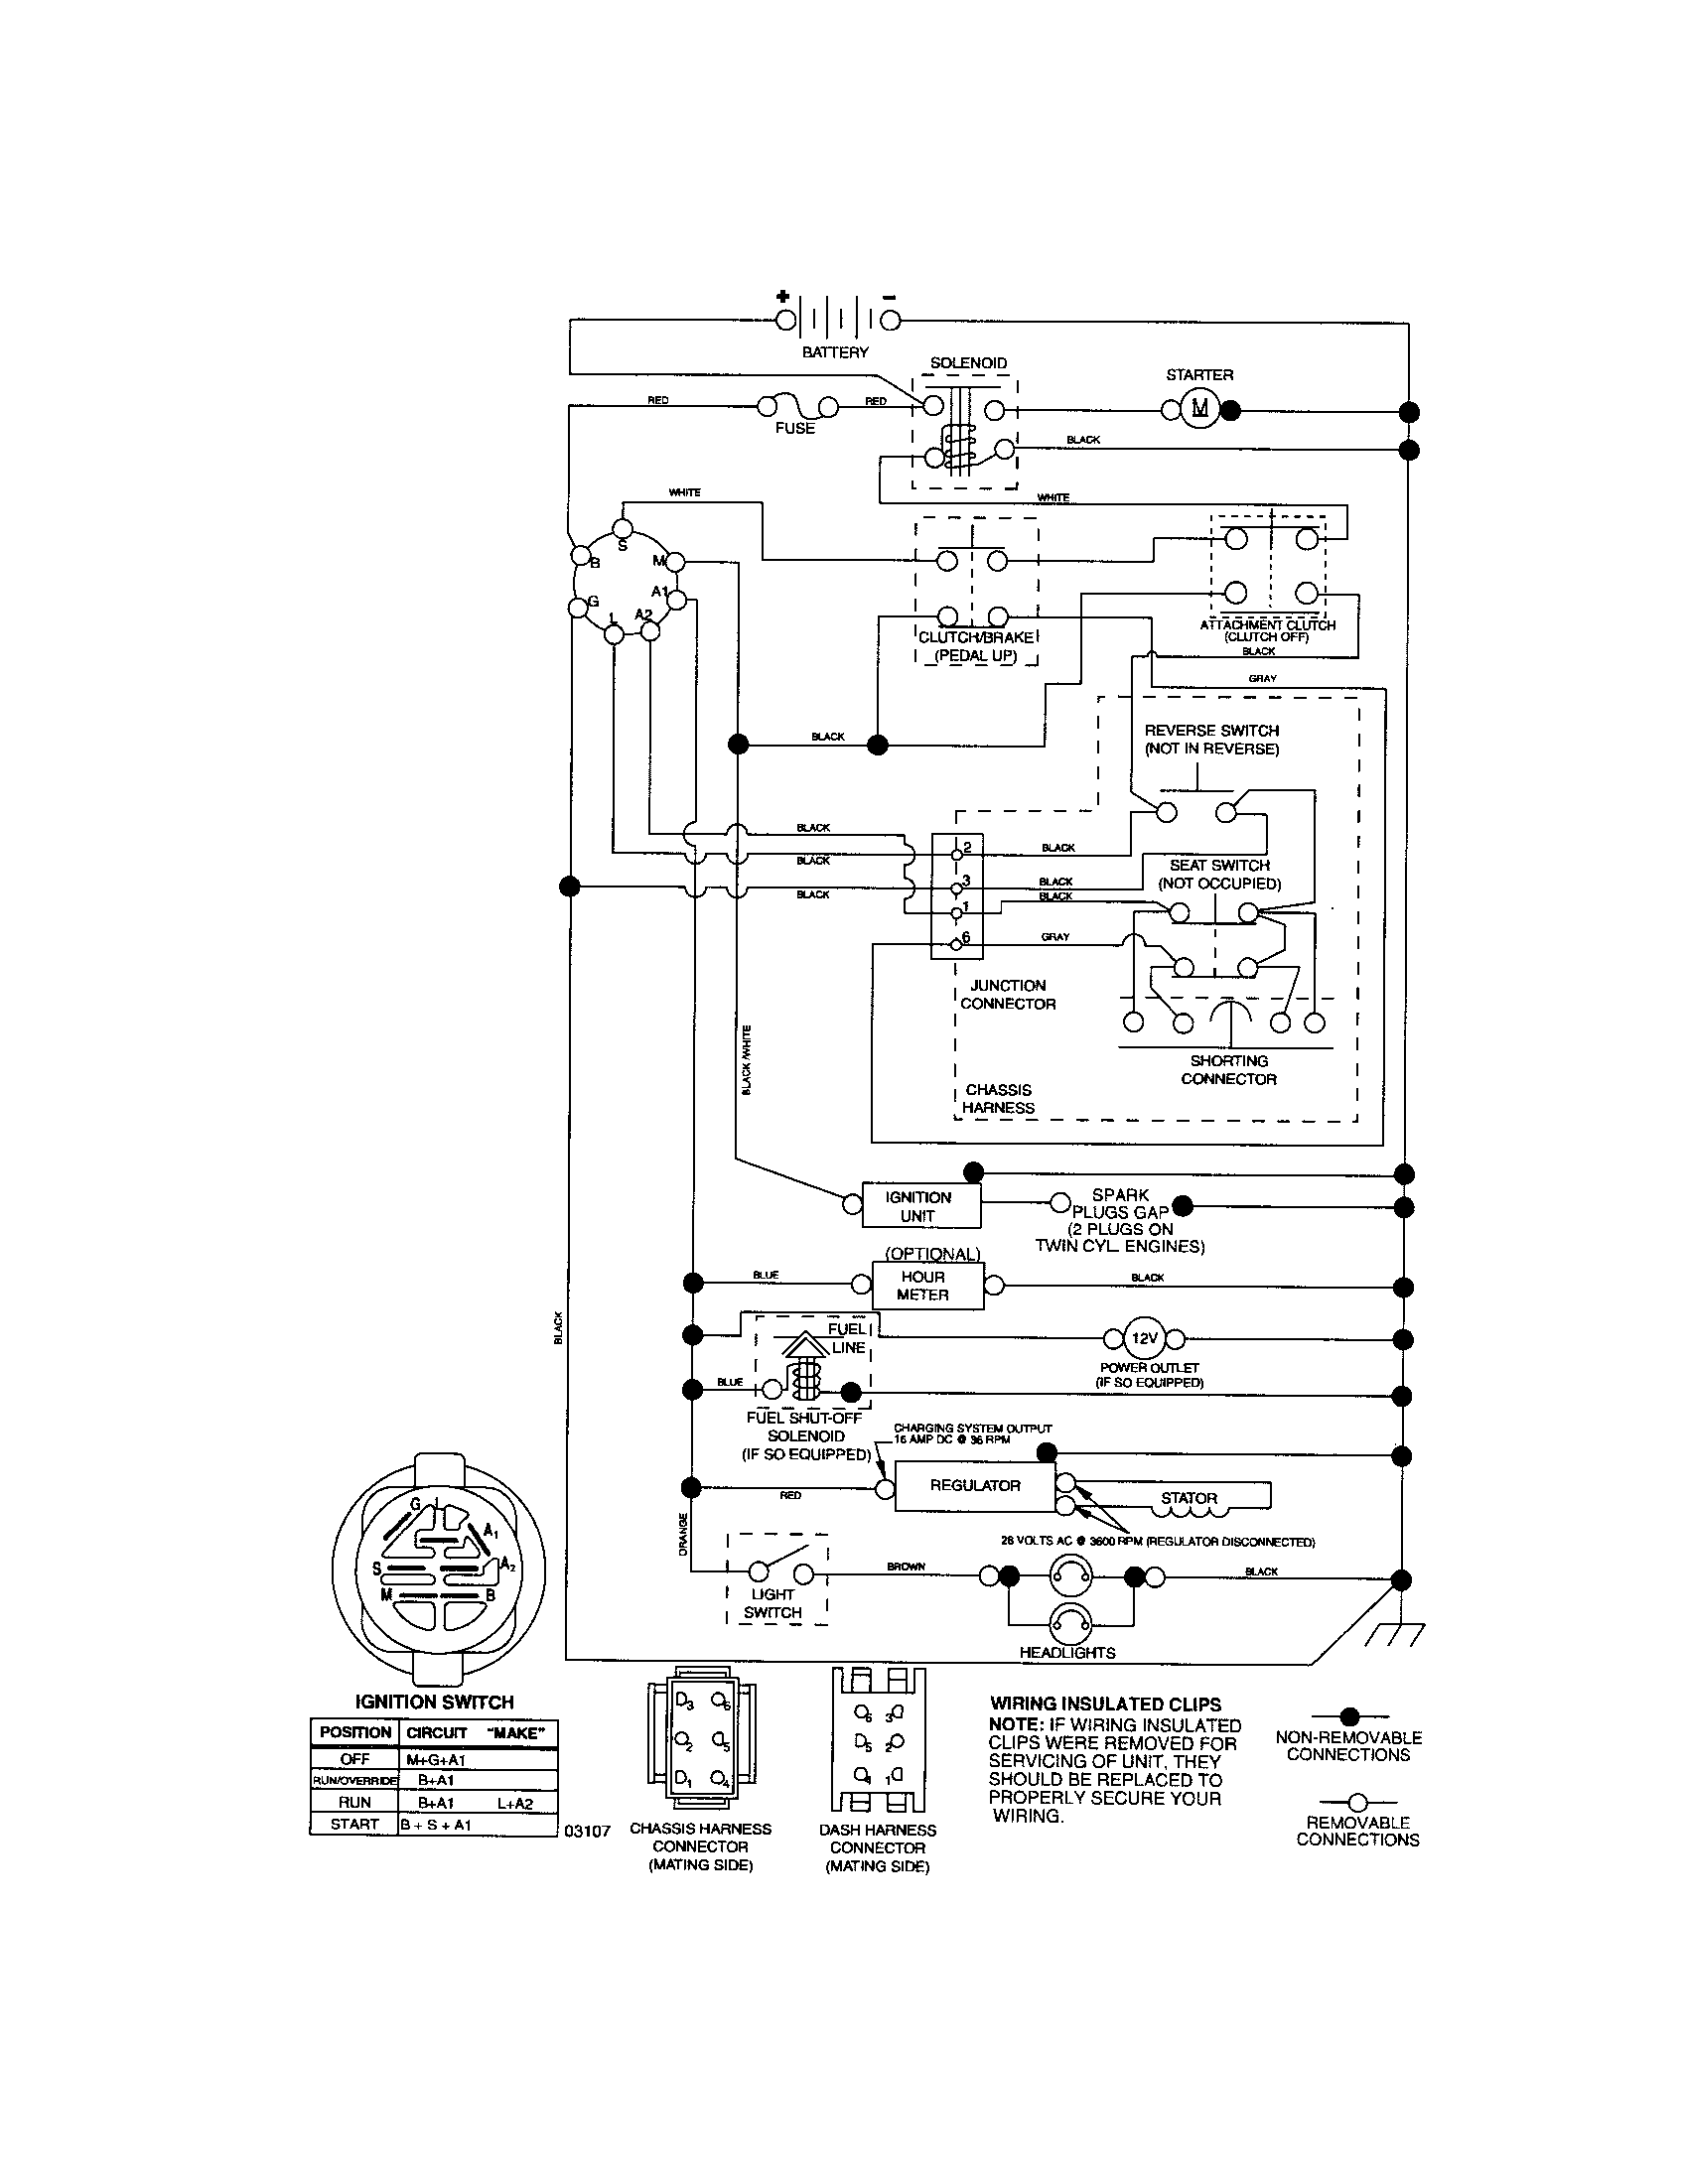 small resolution of swisher wiring harness diagram wiring diagram sortlawn tractor wiring harness wiring diagram swisher wiring harness diagram